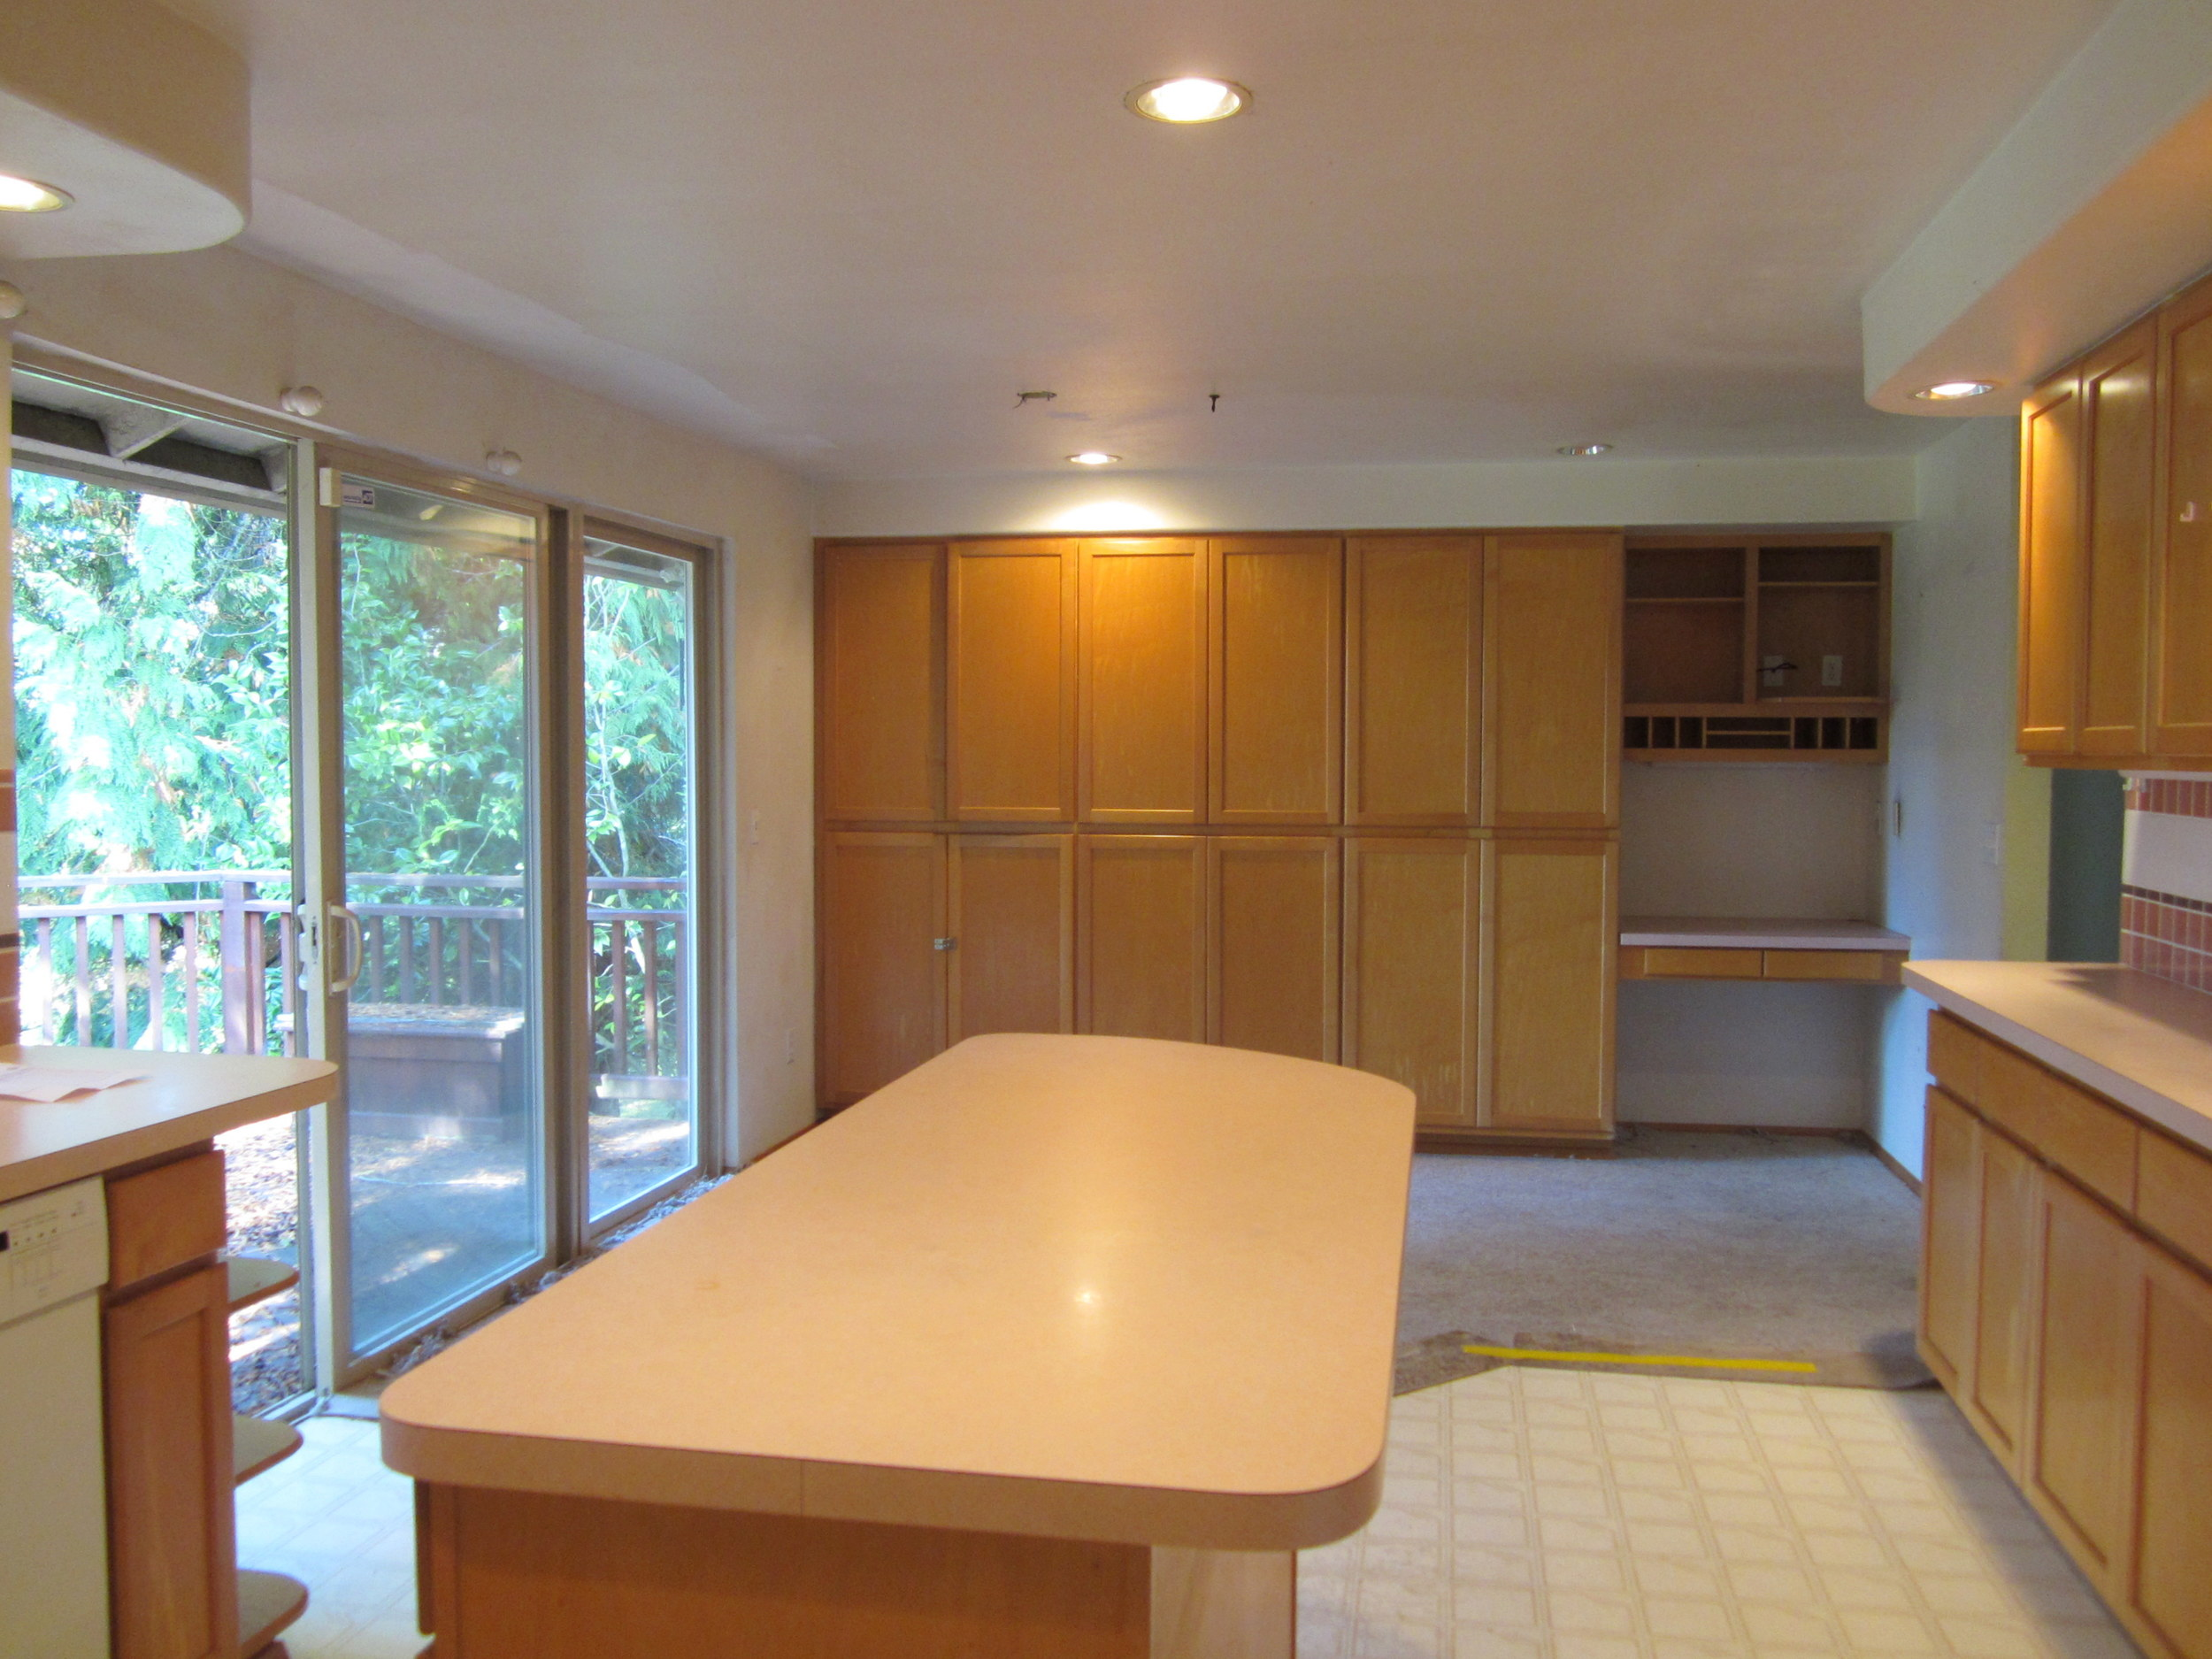 561-933522-kitchen2.JPG